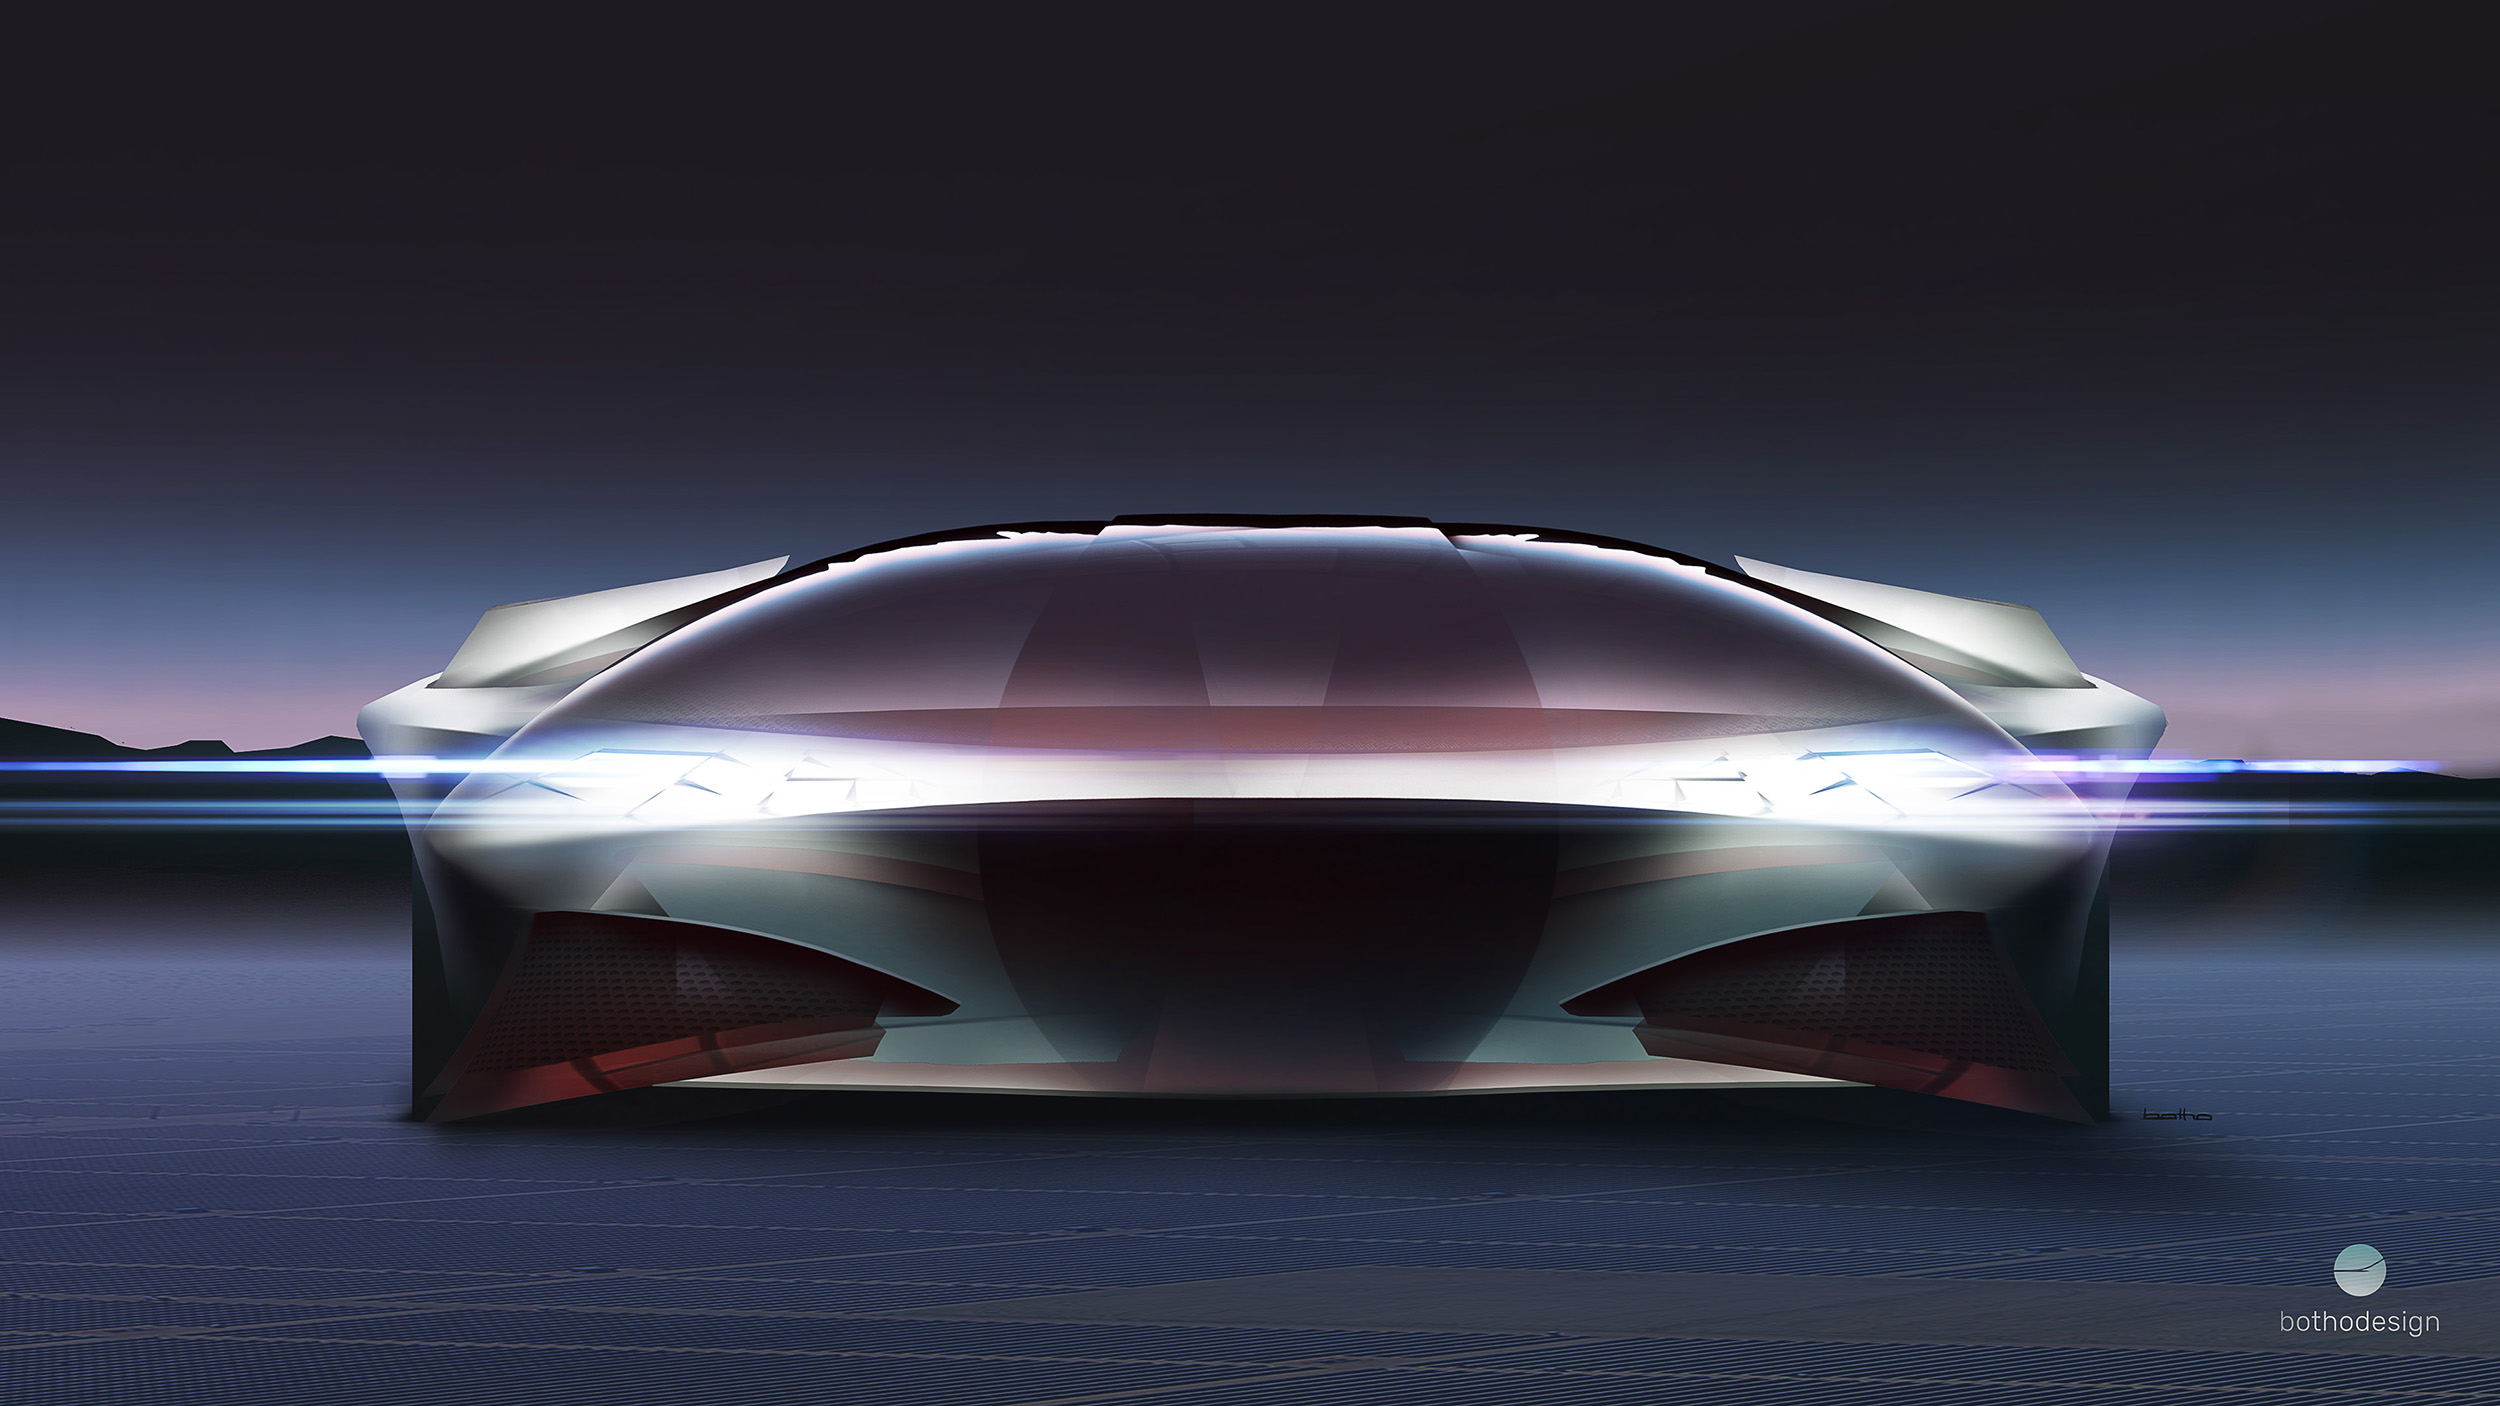 bothodesign-felix-haas-vehicle-automotive-concept-form_sketch_001